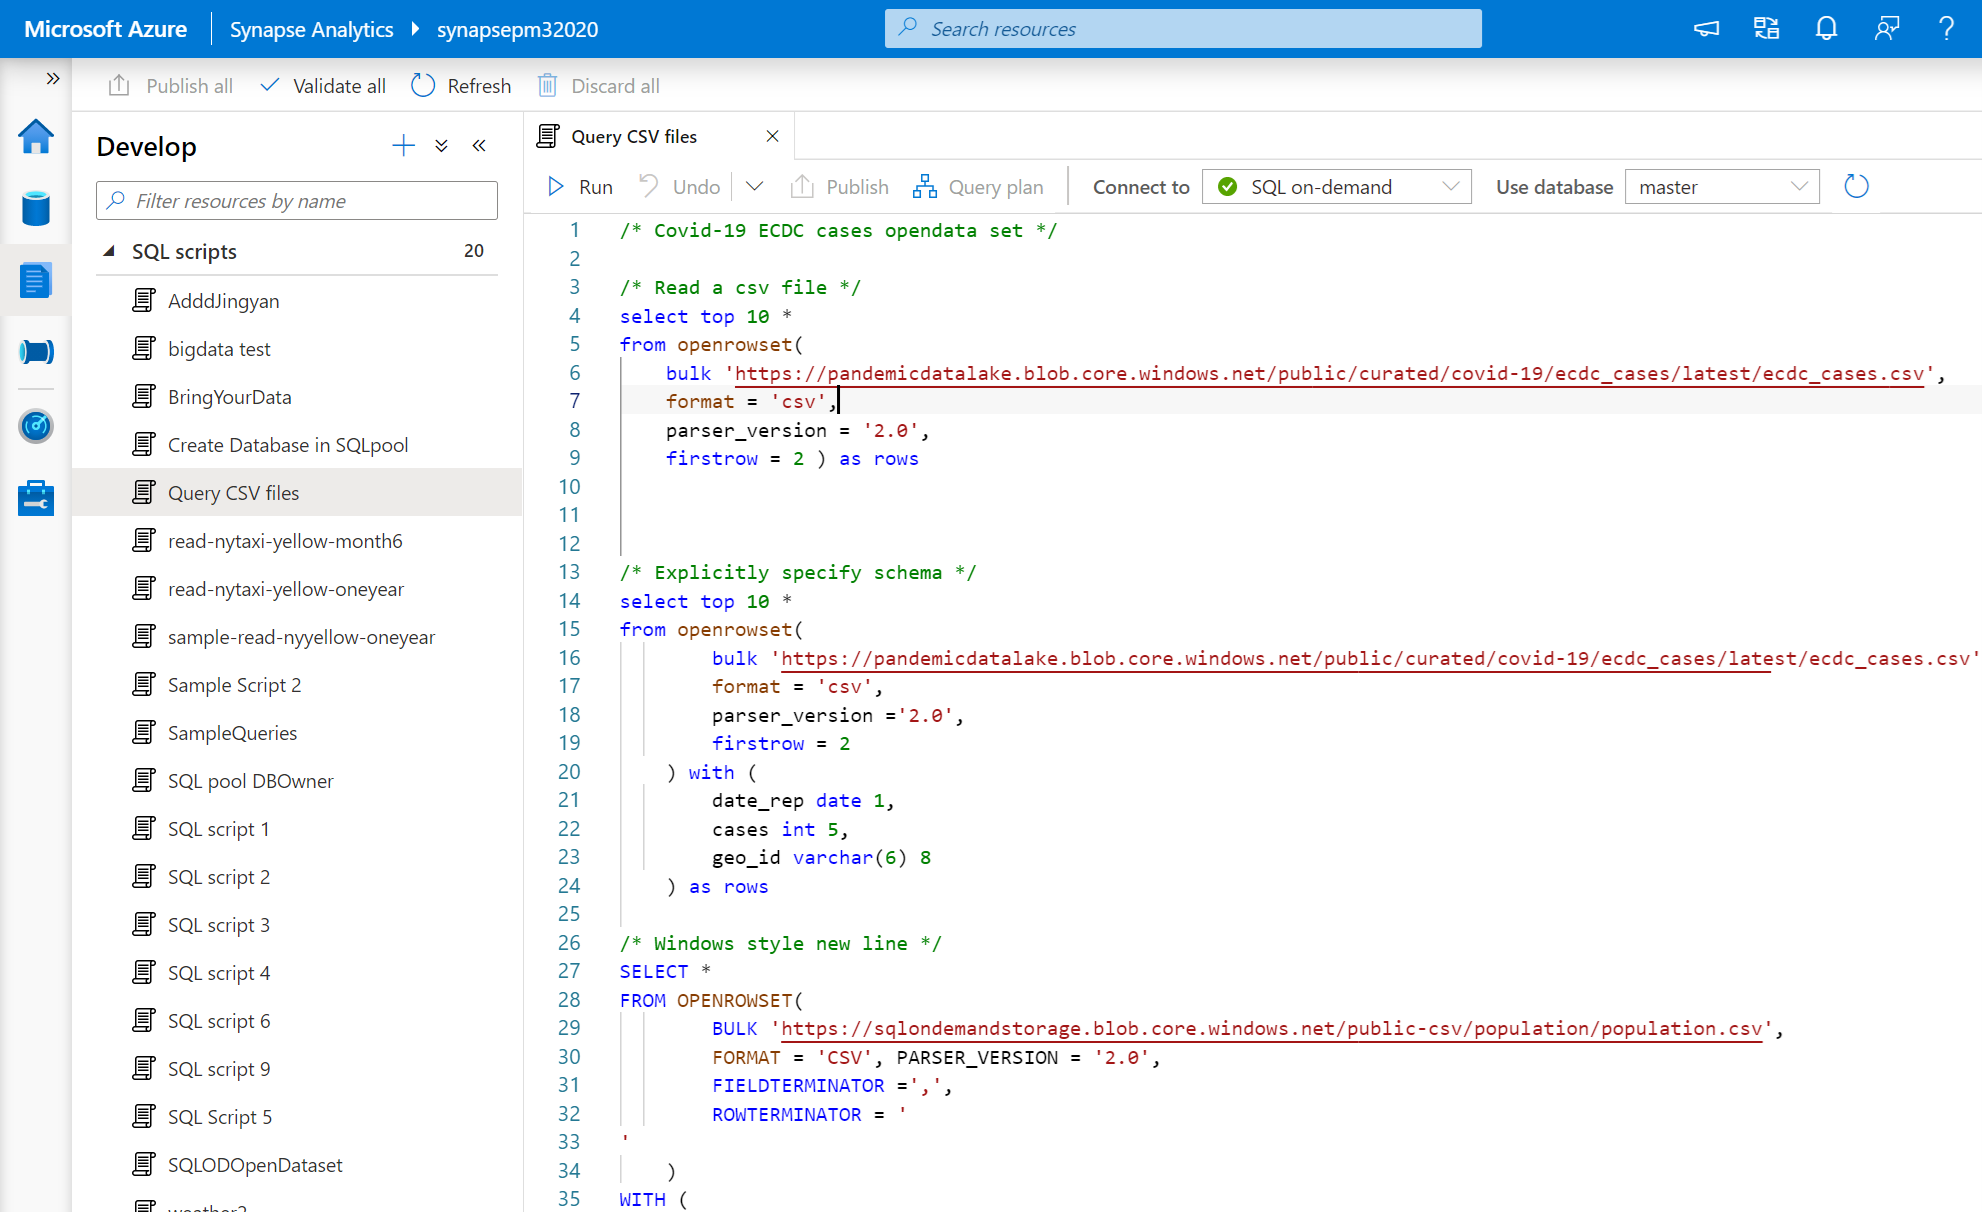 Sample SQL scripts open in the Develop hub of the Azure Synapse Studio under SQL scripts.